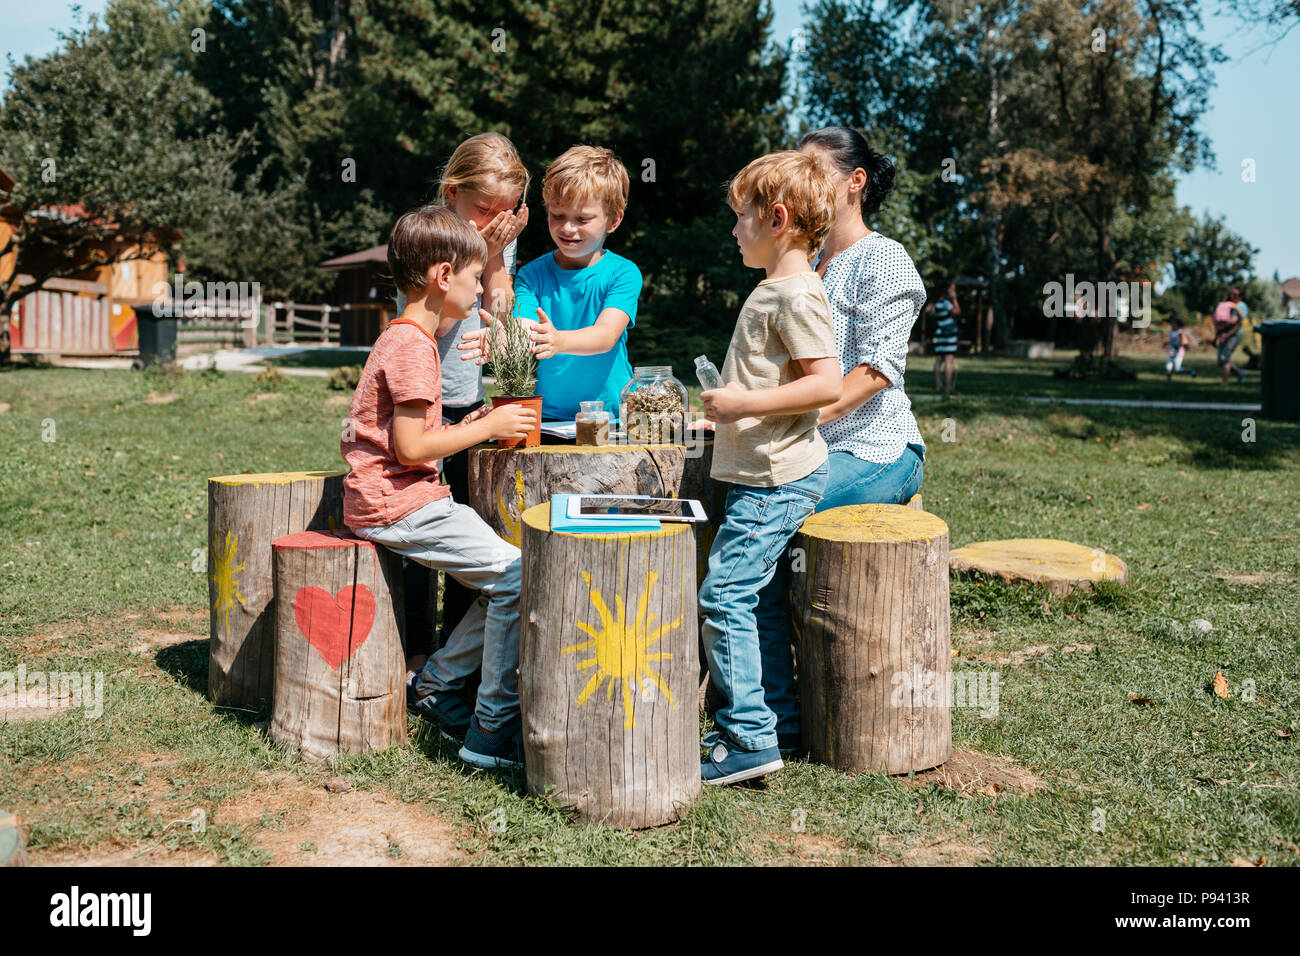 Group of young schoolchildren having a lesson outside in a park. Young primary students exploring herbs through their senses in a garden. - Stock Image